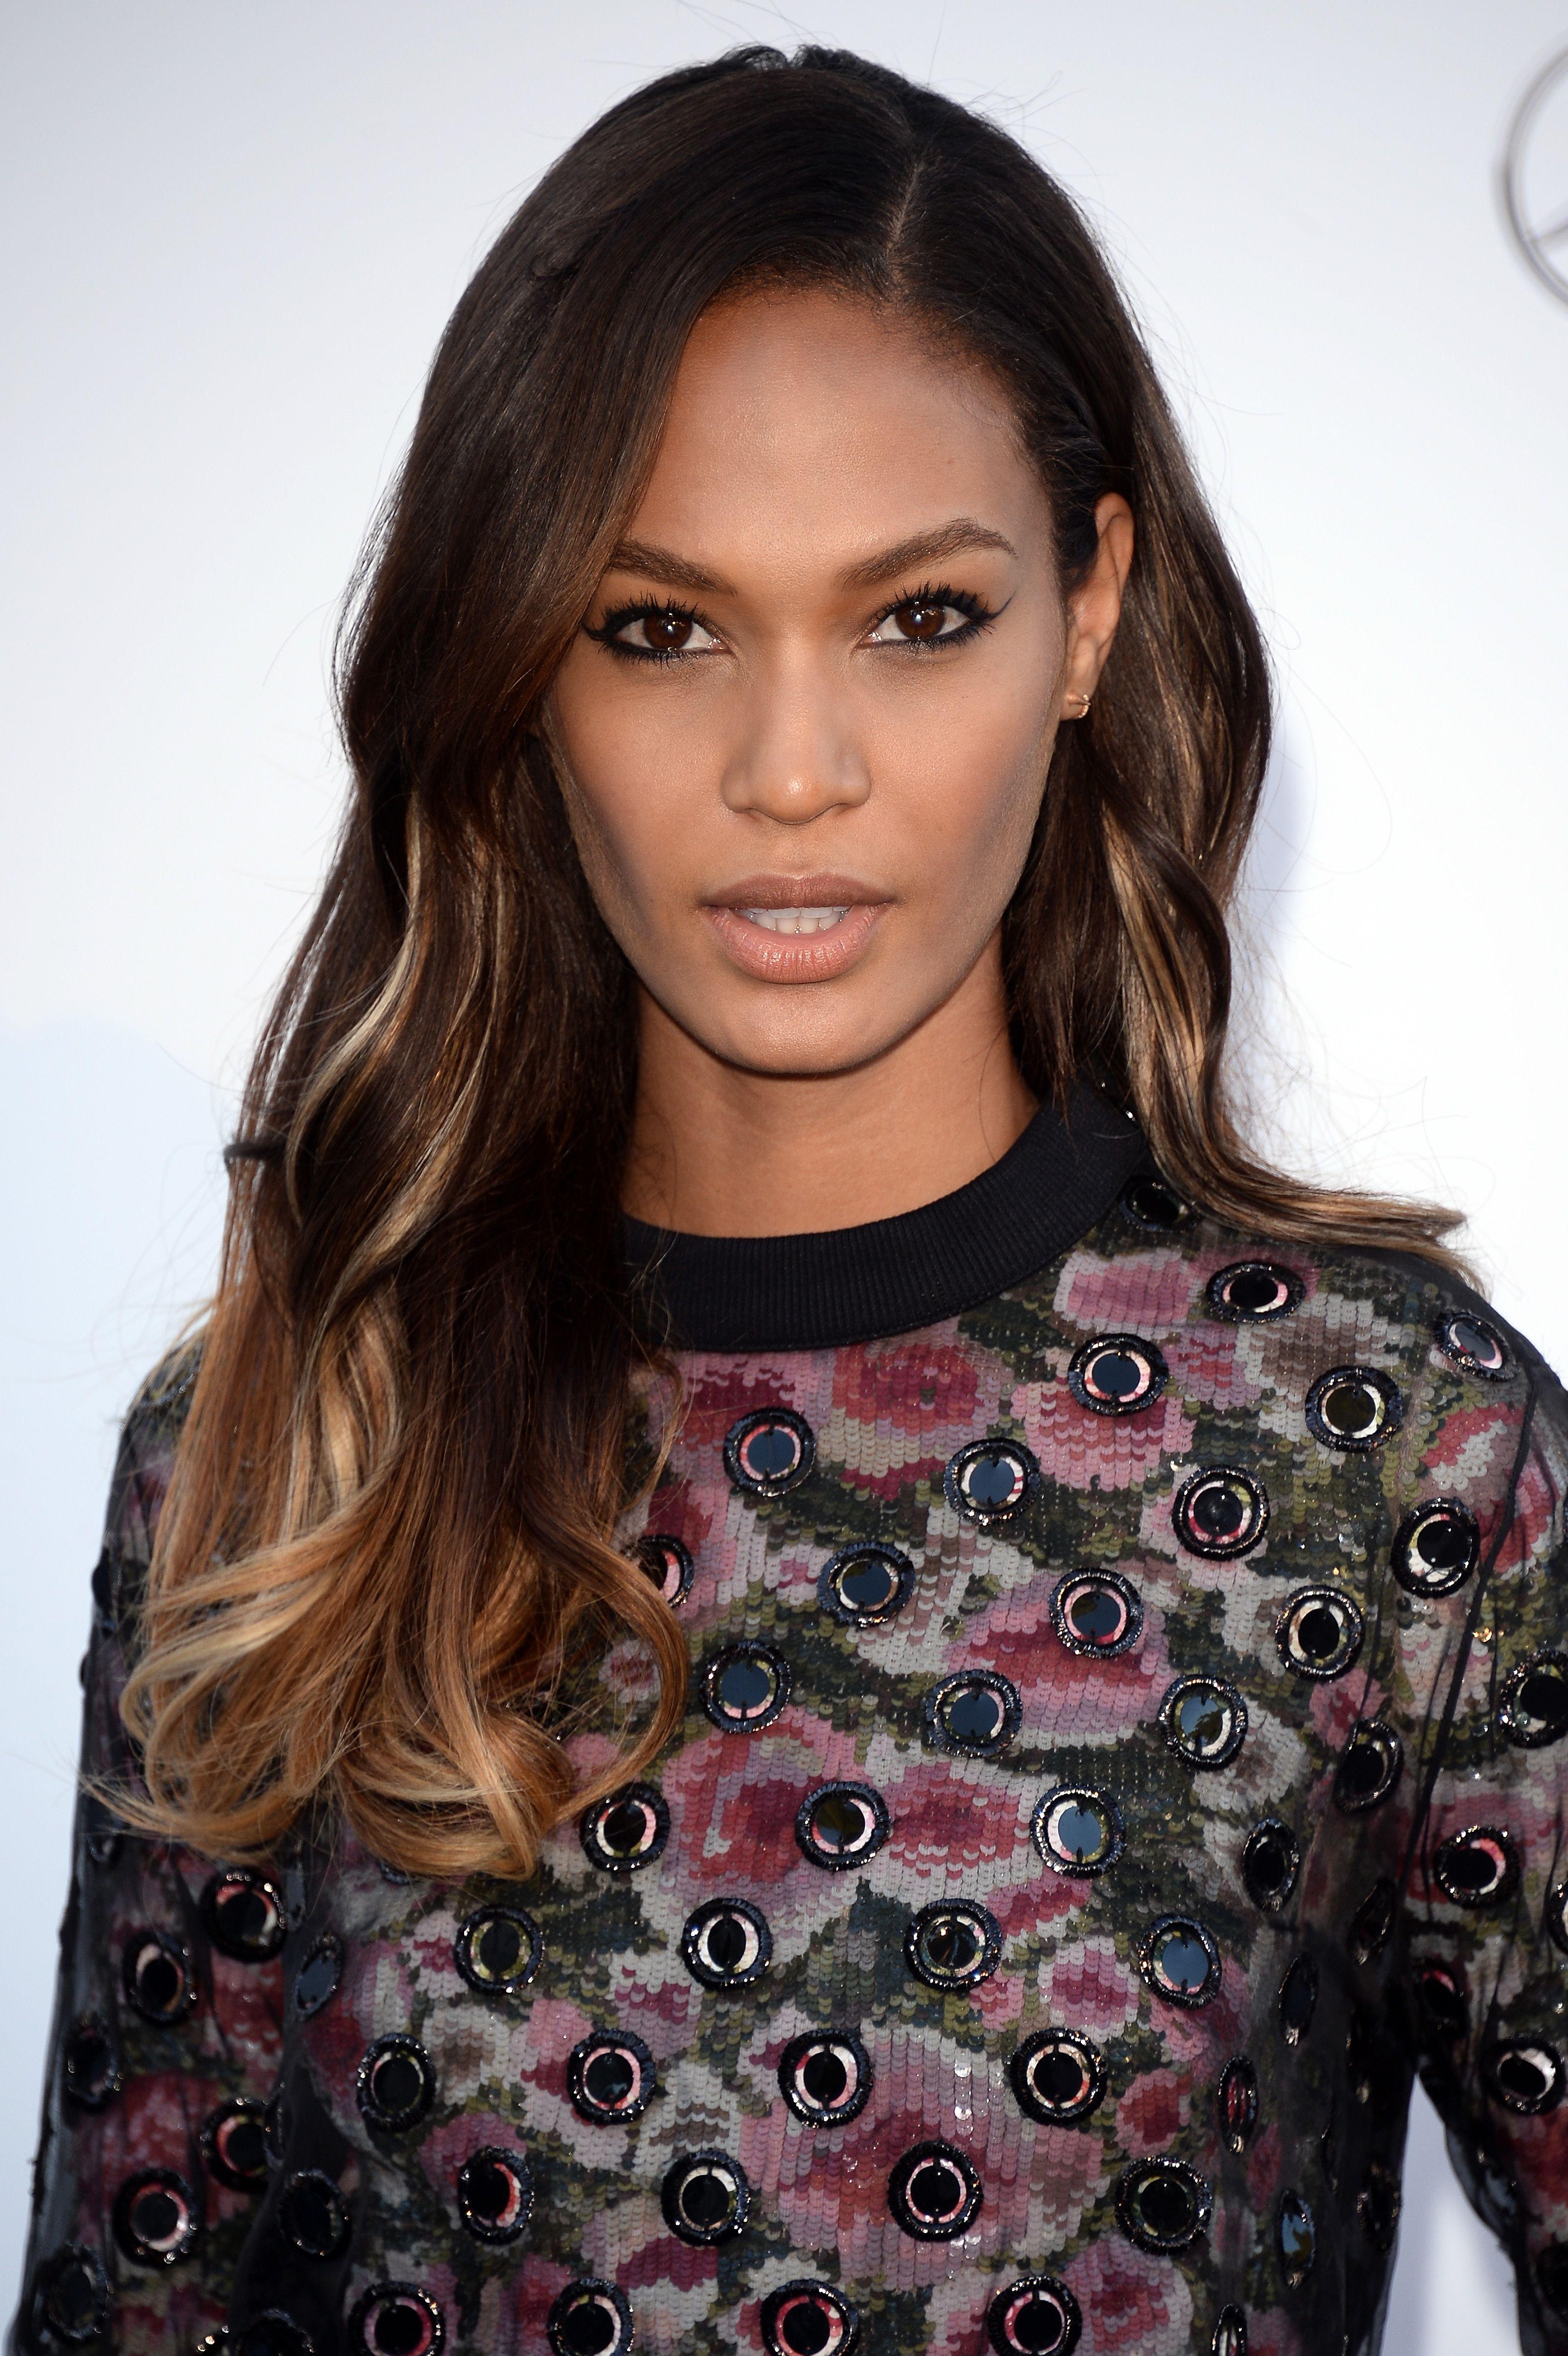 30 best hair highlights for 2017 every style and type of hair 30 best hair highlights for 2017 every style and type of hair highlights pmusecretfo Images